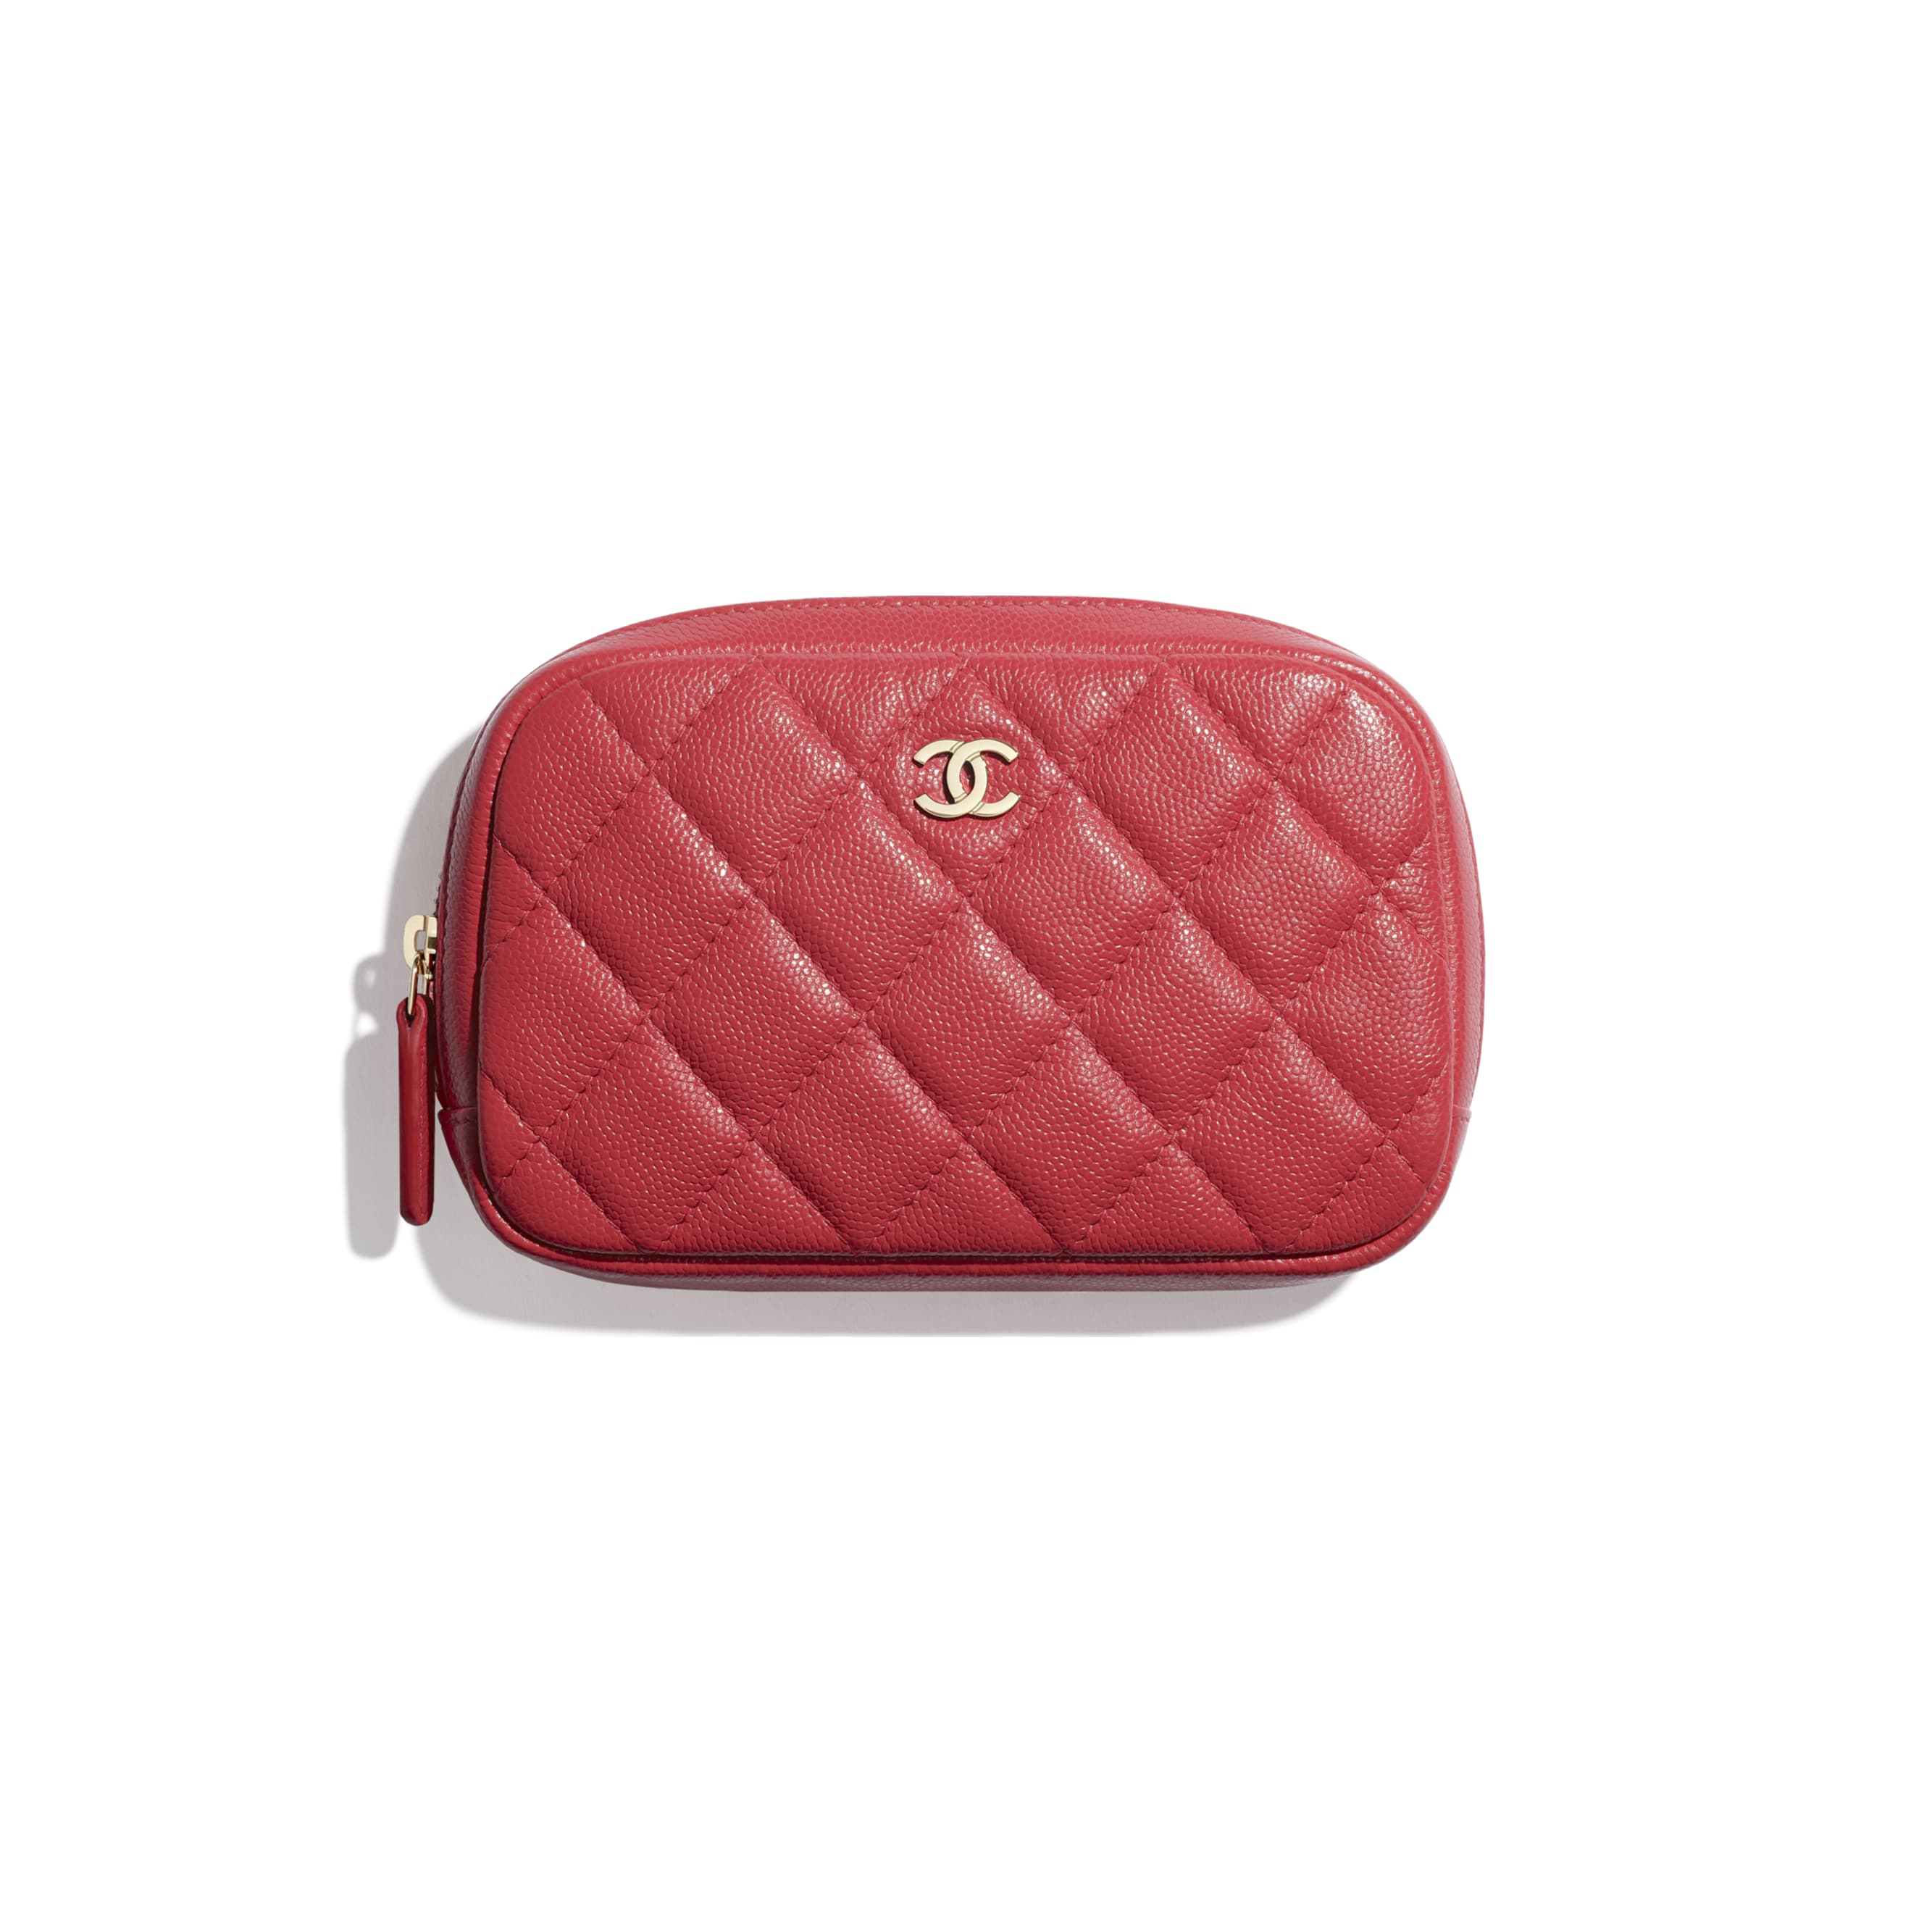 Classic Case - Red - Grained Calfskin & Gold-Tone Metal - CHANEL - Default view - see standard sized version